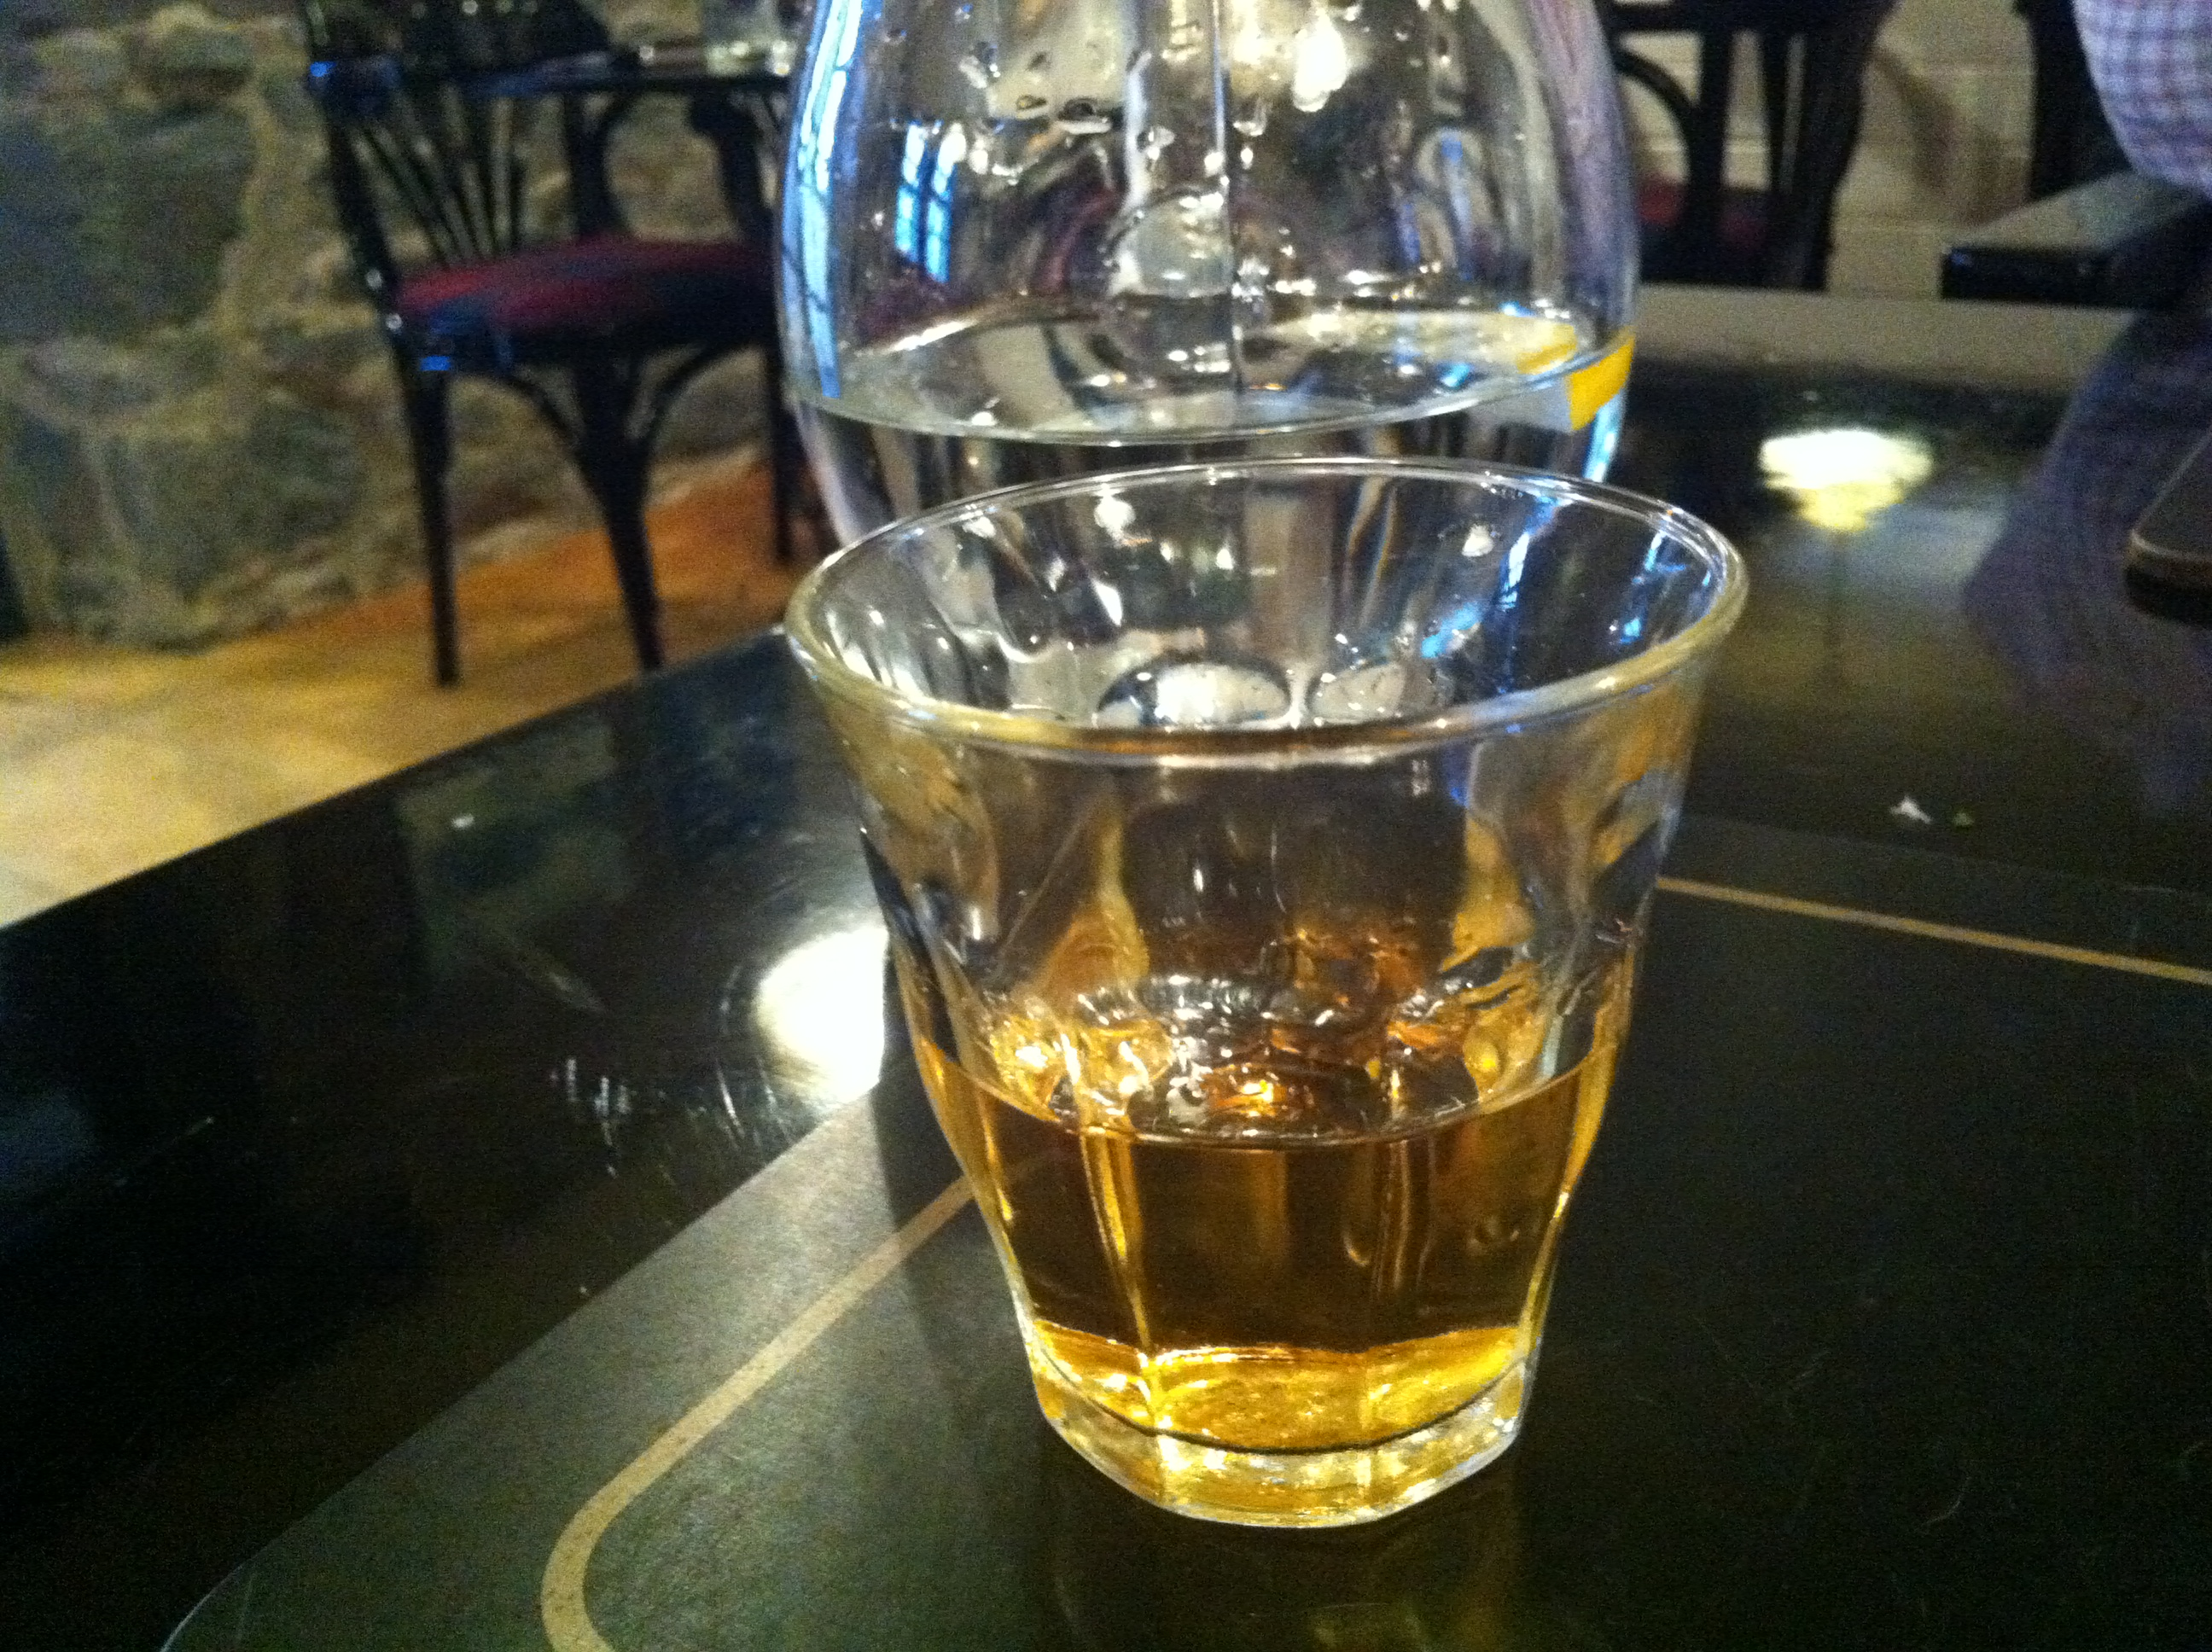 Wee dram of Whisky